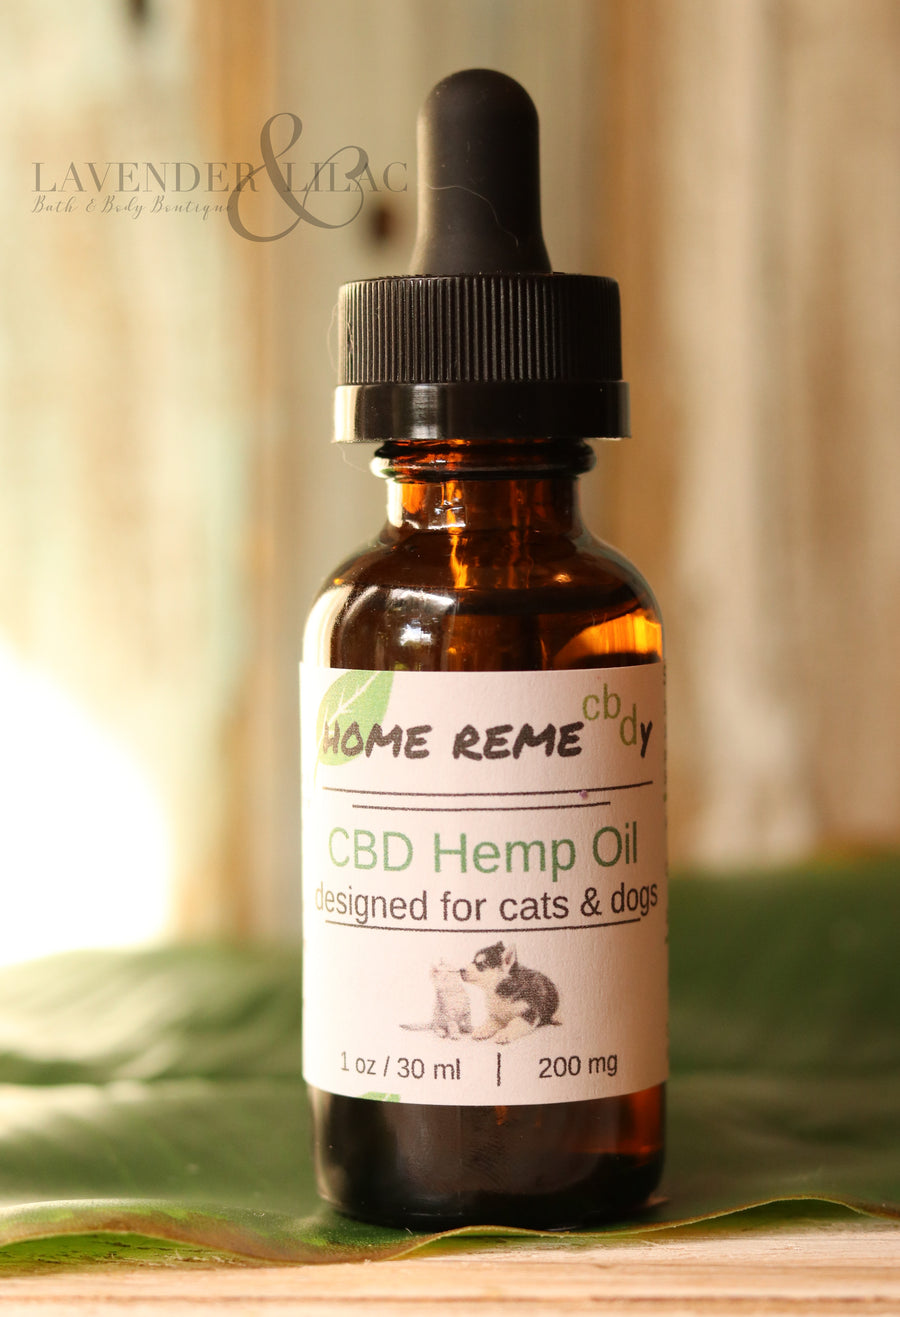 CBD Pet Drops - 200 mg - Home Remecbdy